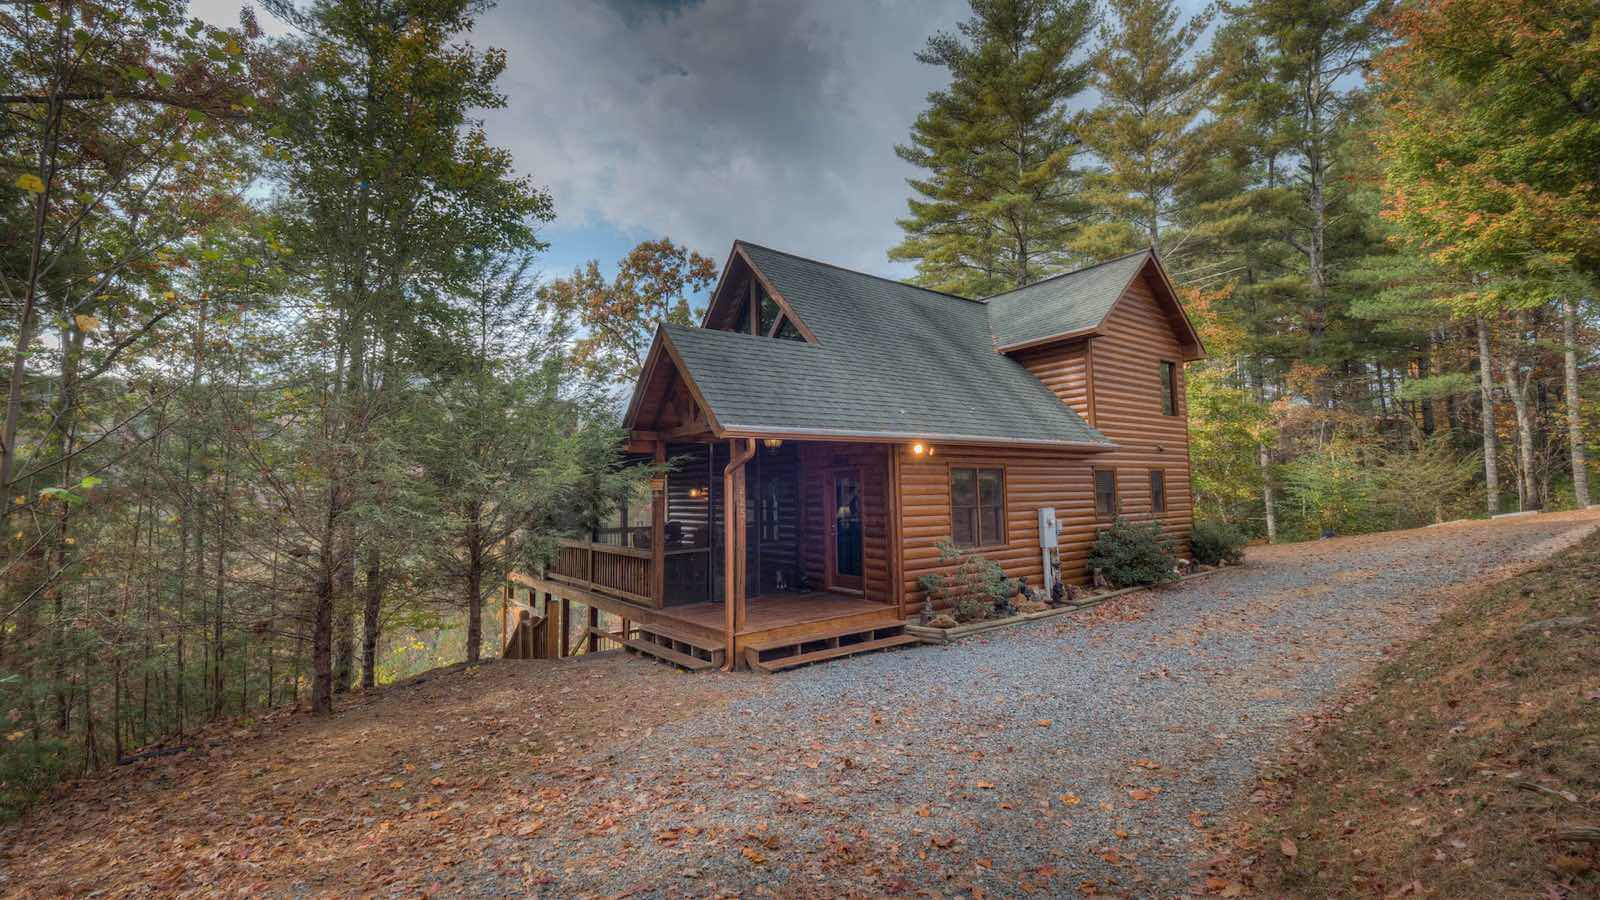 cabins ga estate sold rosser road real harry listing mountain stone